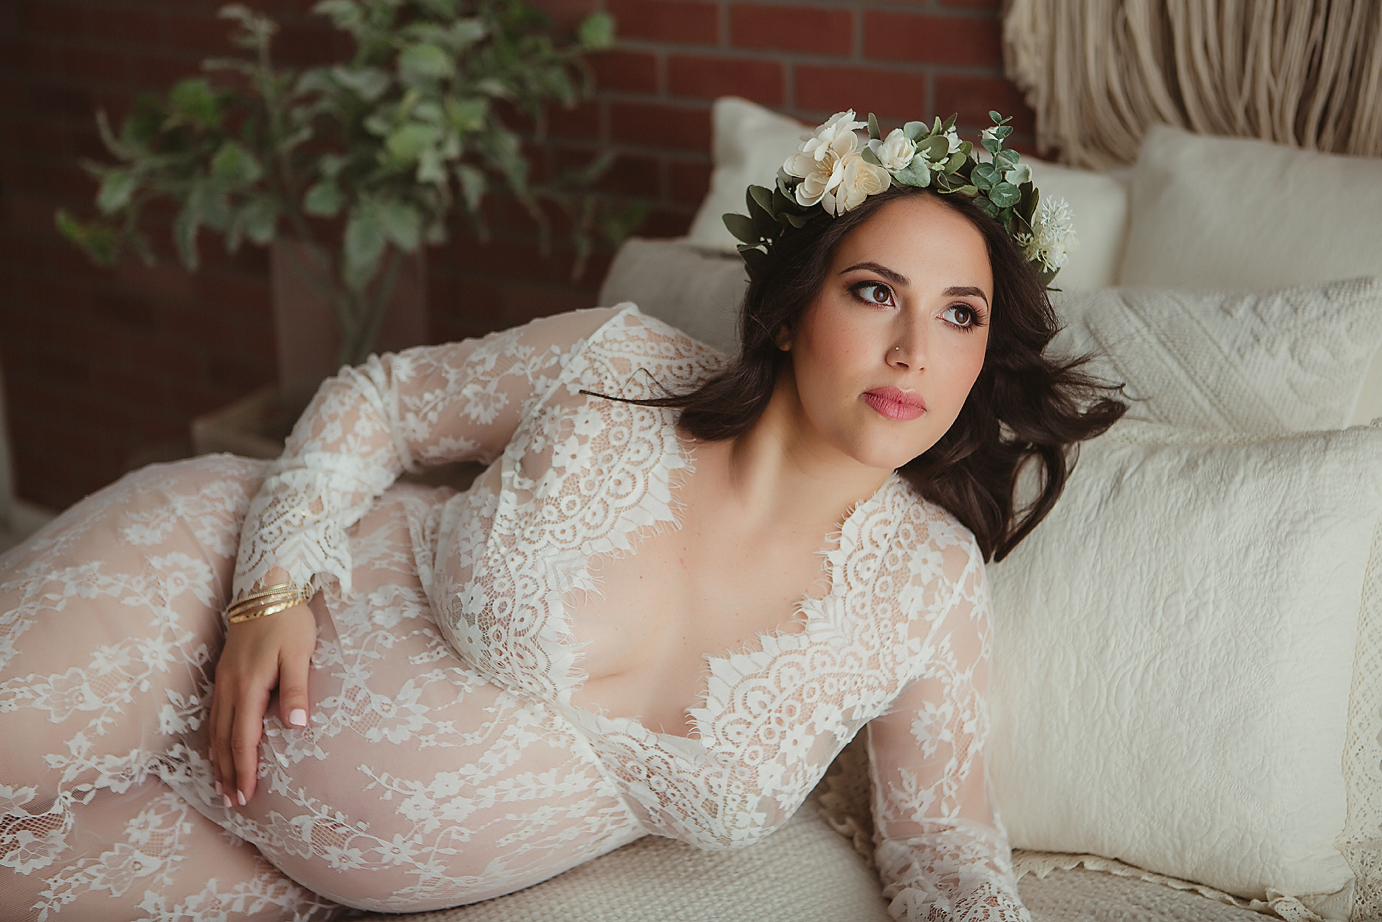 irvine-maternity-photography-studio-lace-dress-romatic-floral-halo-bedroom-romantic.png